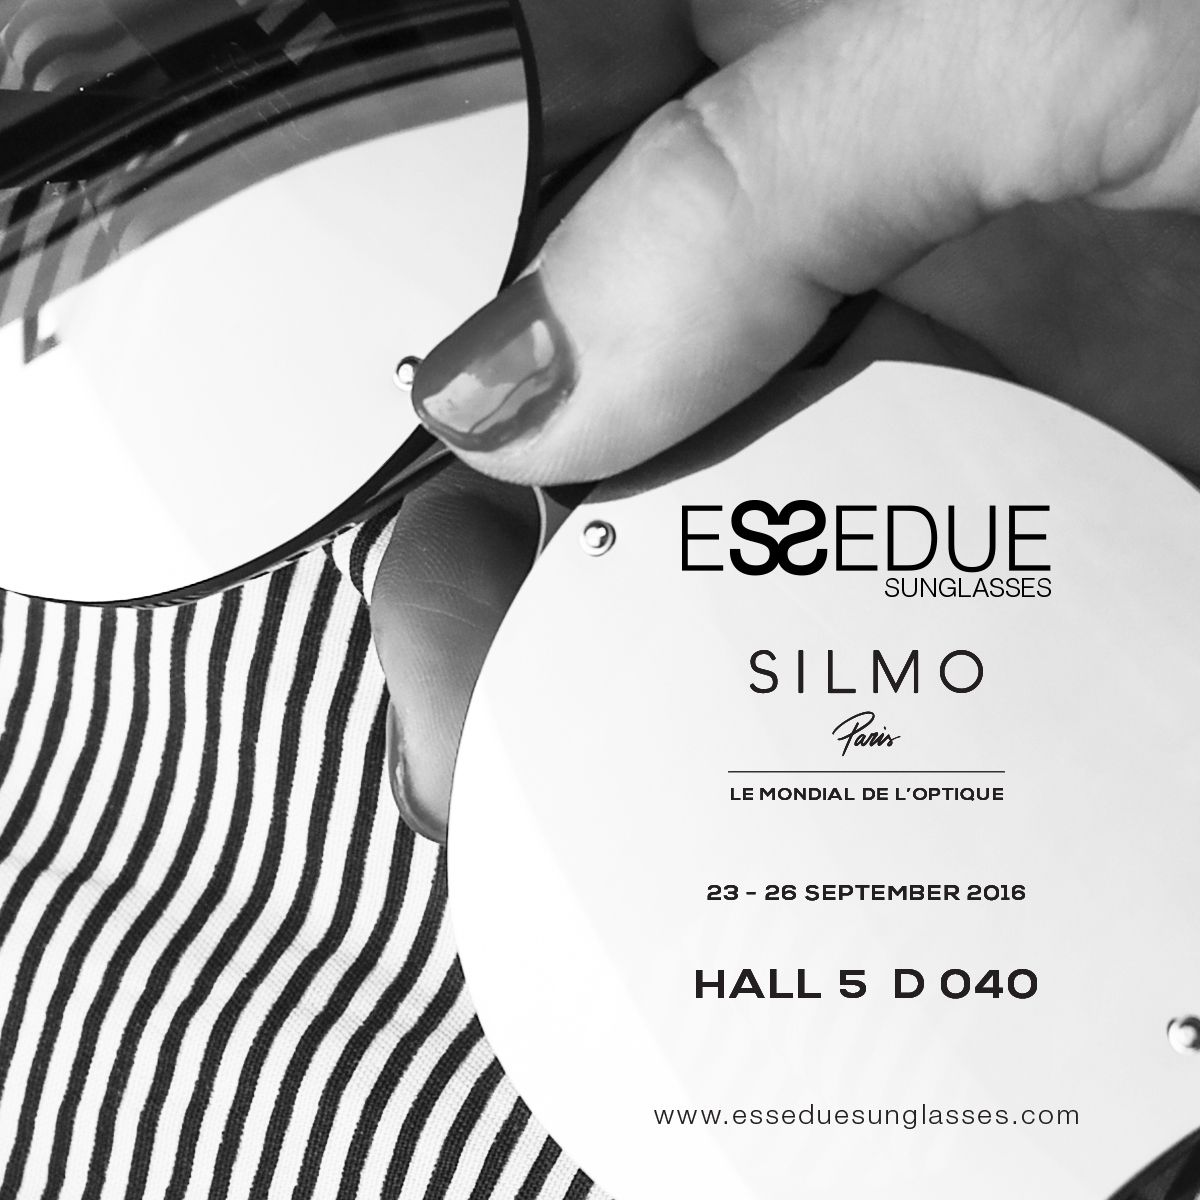 #silmoparis #silmo #essedue #esseduesunglasses #design #handmadeinitaly #sunglasses #eyeglasses #opticalfair